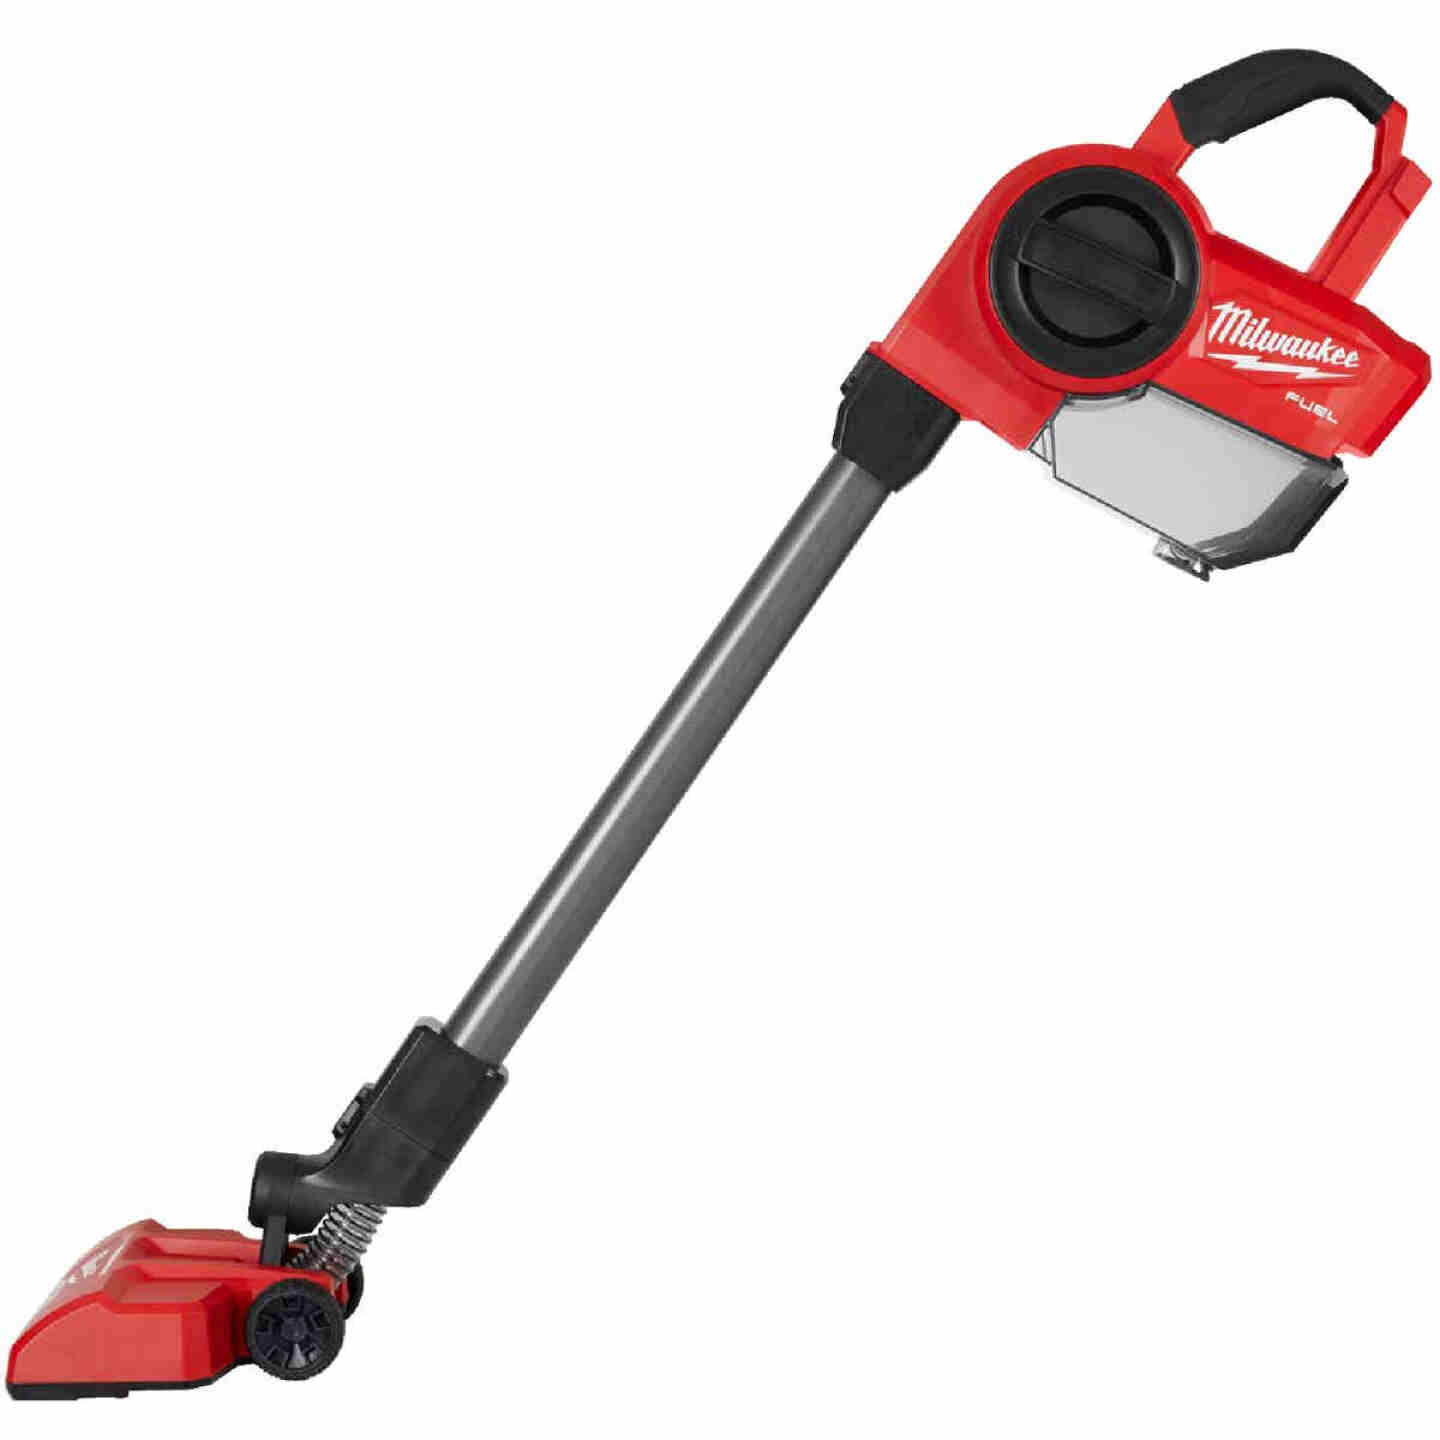 Milwaukee M18 FUEL 18 Volt Lithium-Ion Brushless Cordless 0.25 Gal Compact Wet/Dry Vacuum (Bare Tool) Image 1